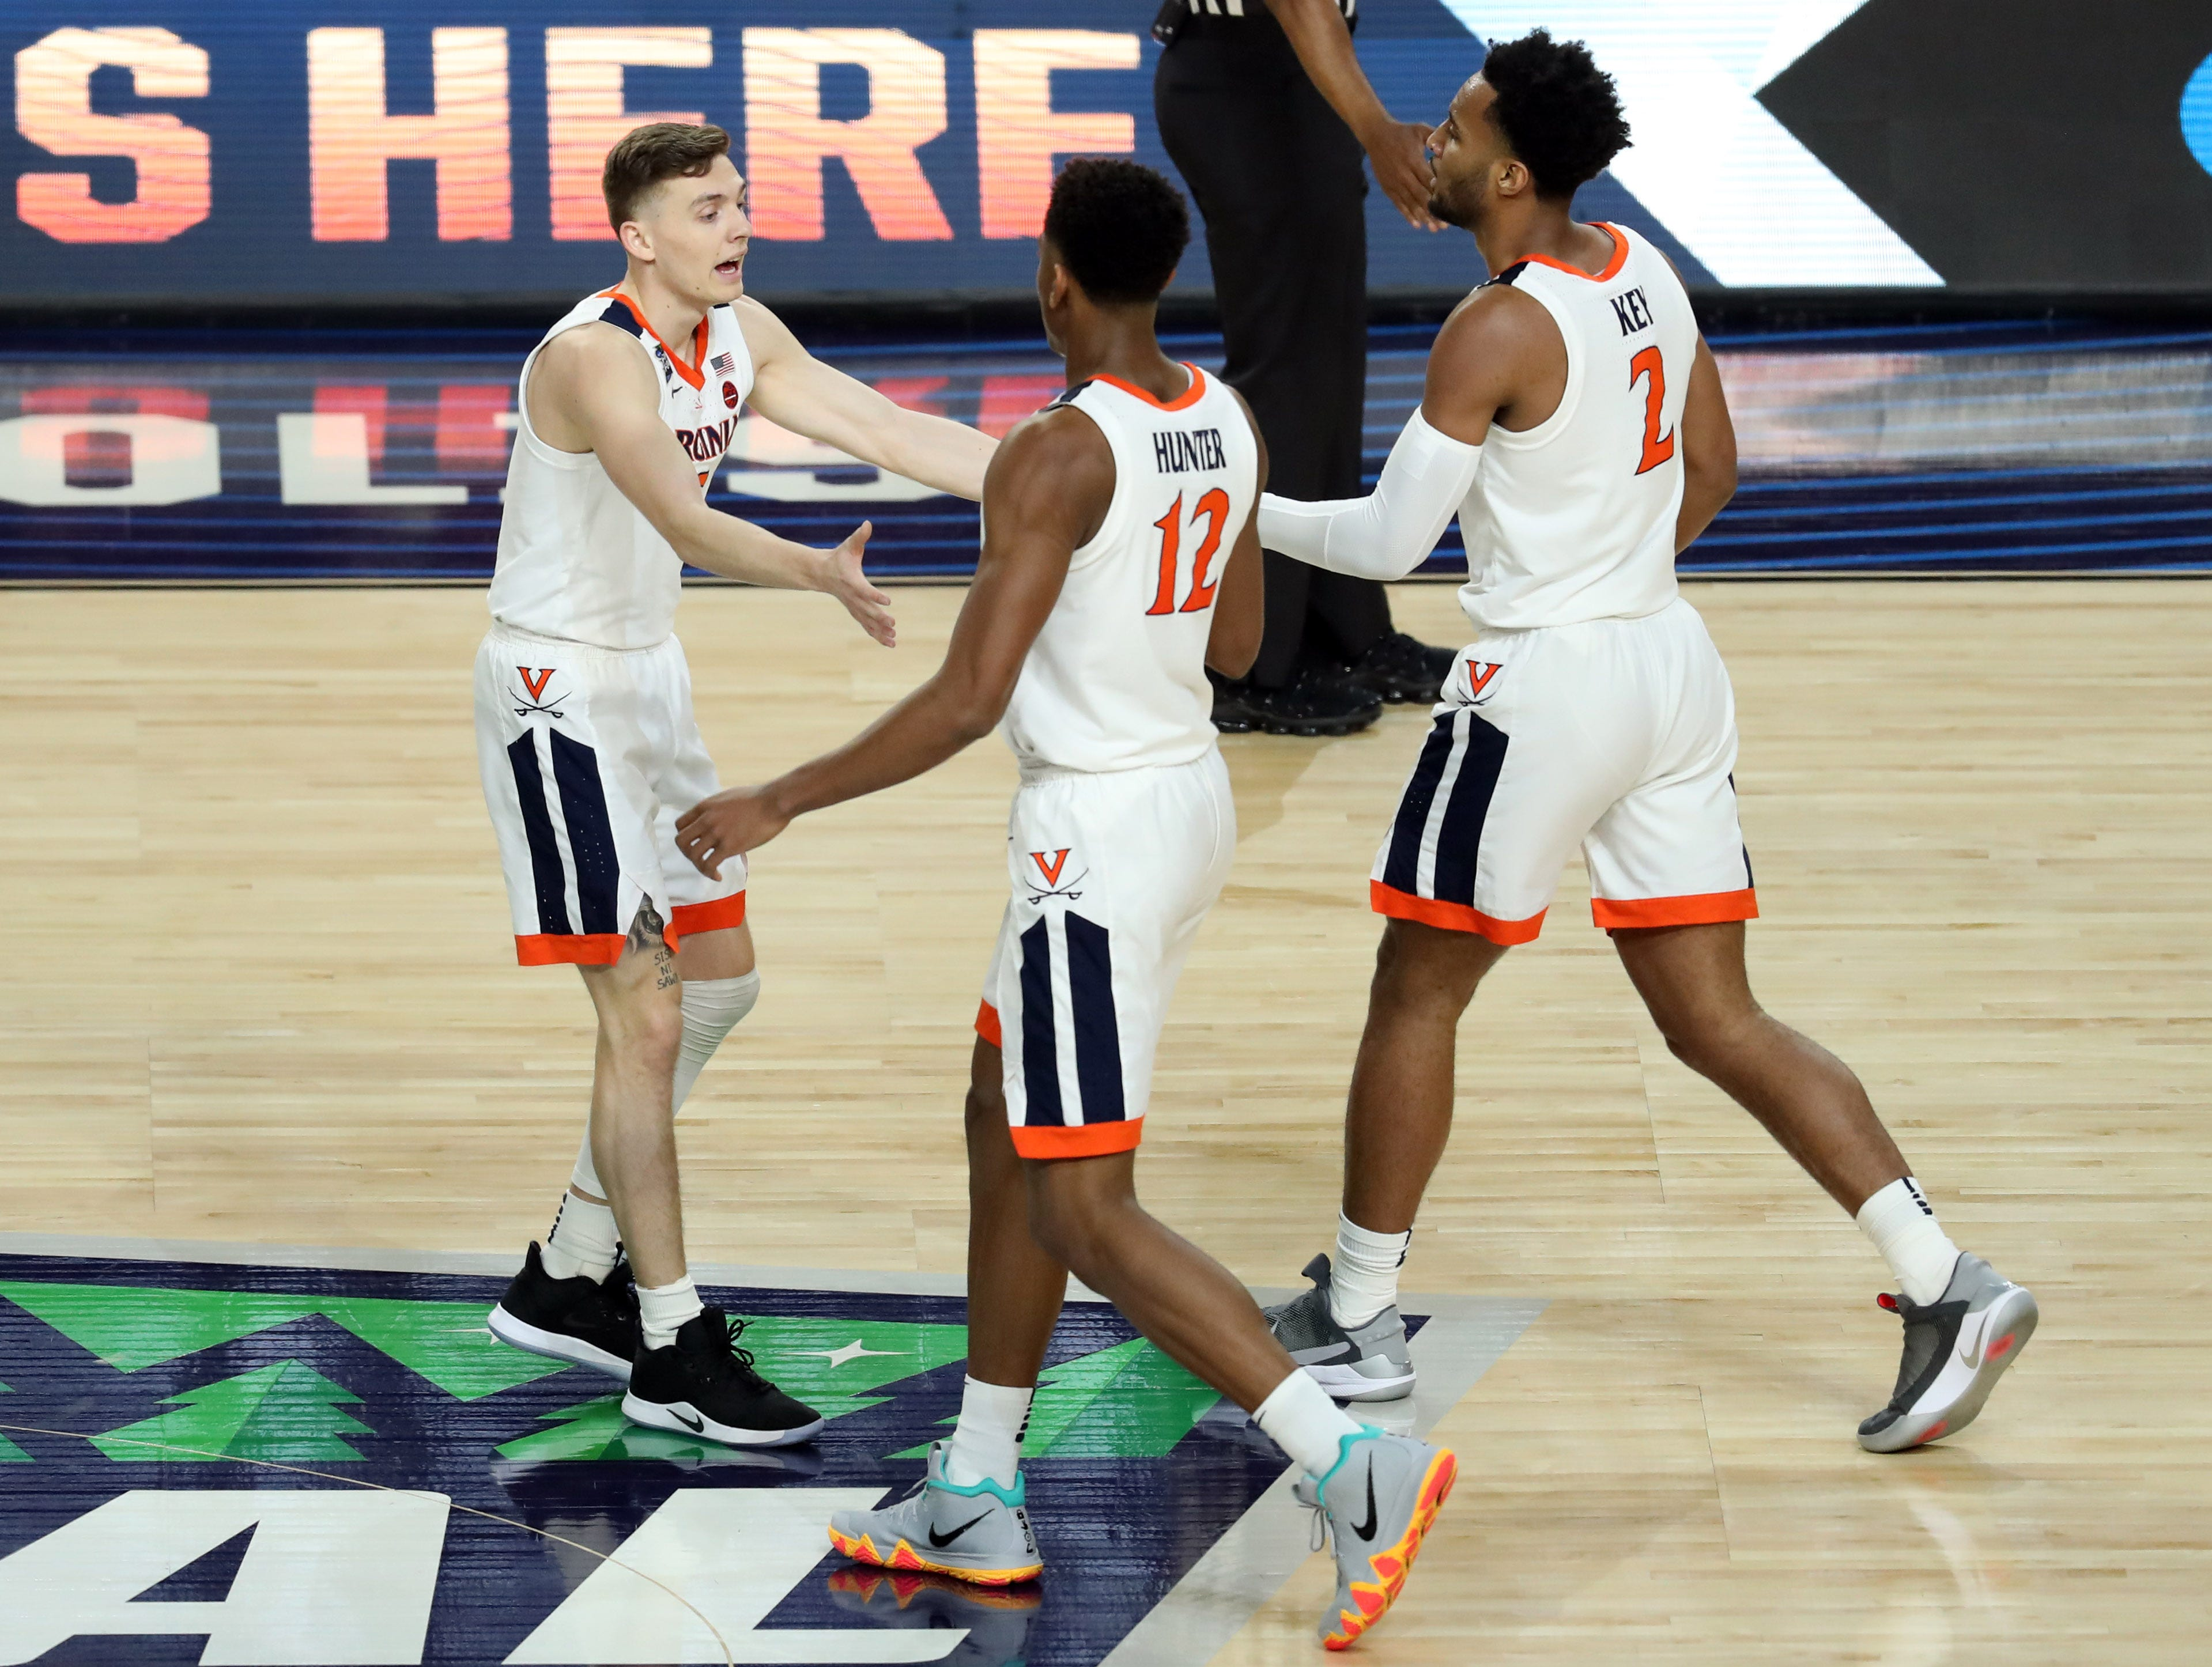 Apr 8, 2019; Minneapolis, MN, USA; The Virginia Cavaliers celebrate during the first half against the Texas Tech Red Raiders in the championship game of the 2019 men's Final Four at US Bank Stadium. Mandatory Credit: Brace Hemmelgarn-USA TODAY Sports